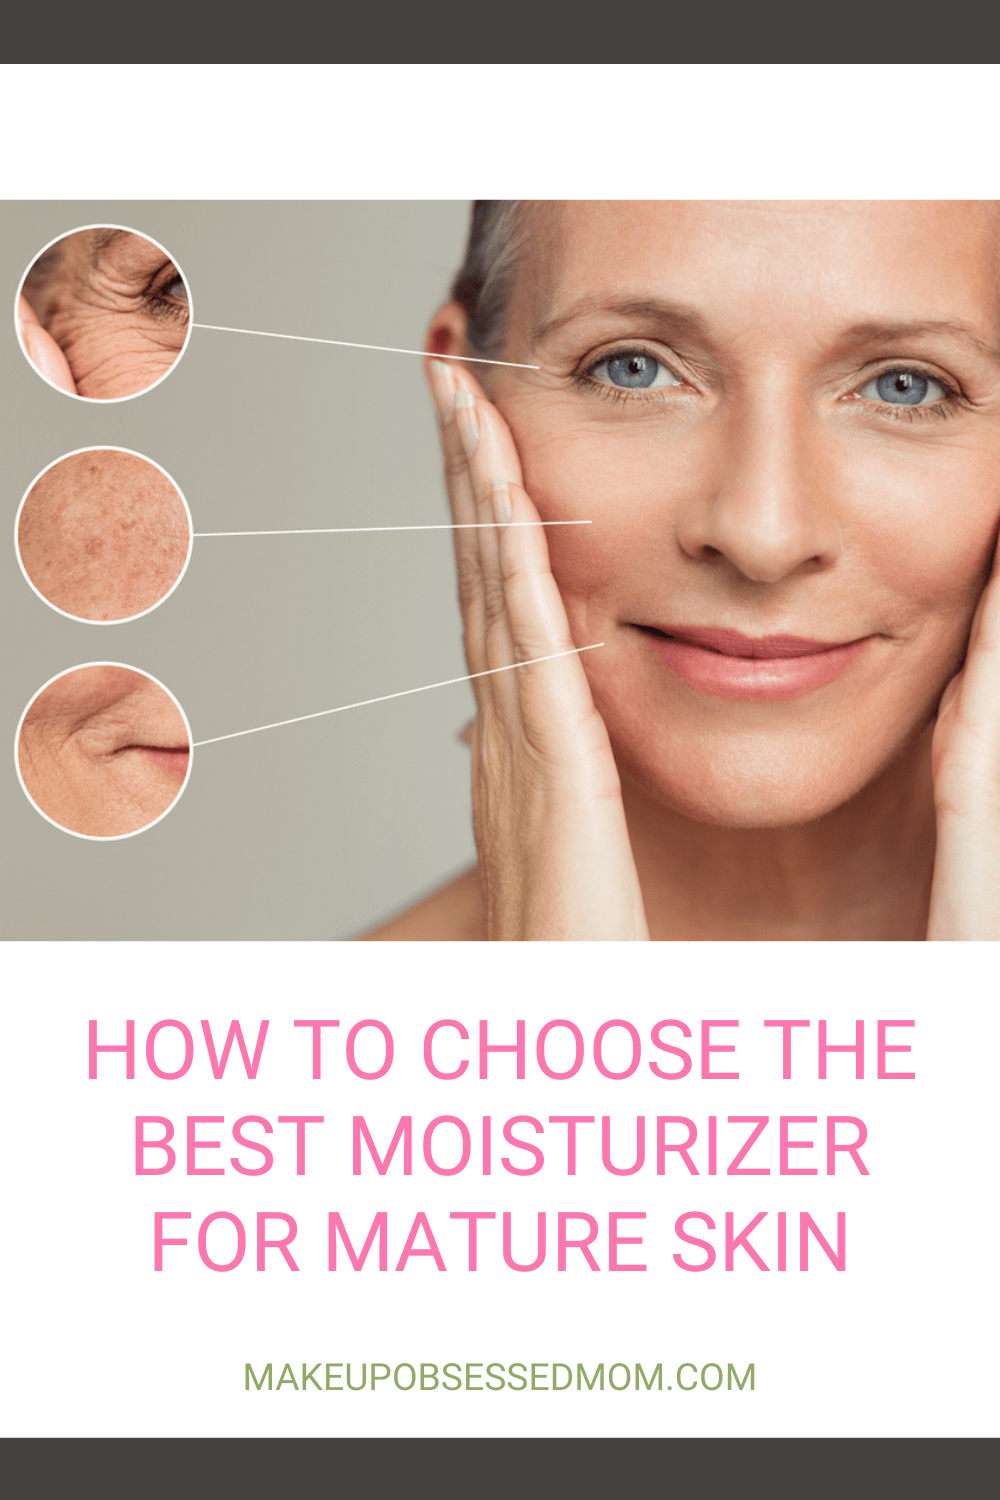 How to Choose the Best Moisturizer for Mature Skin